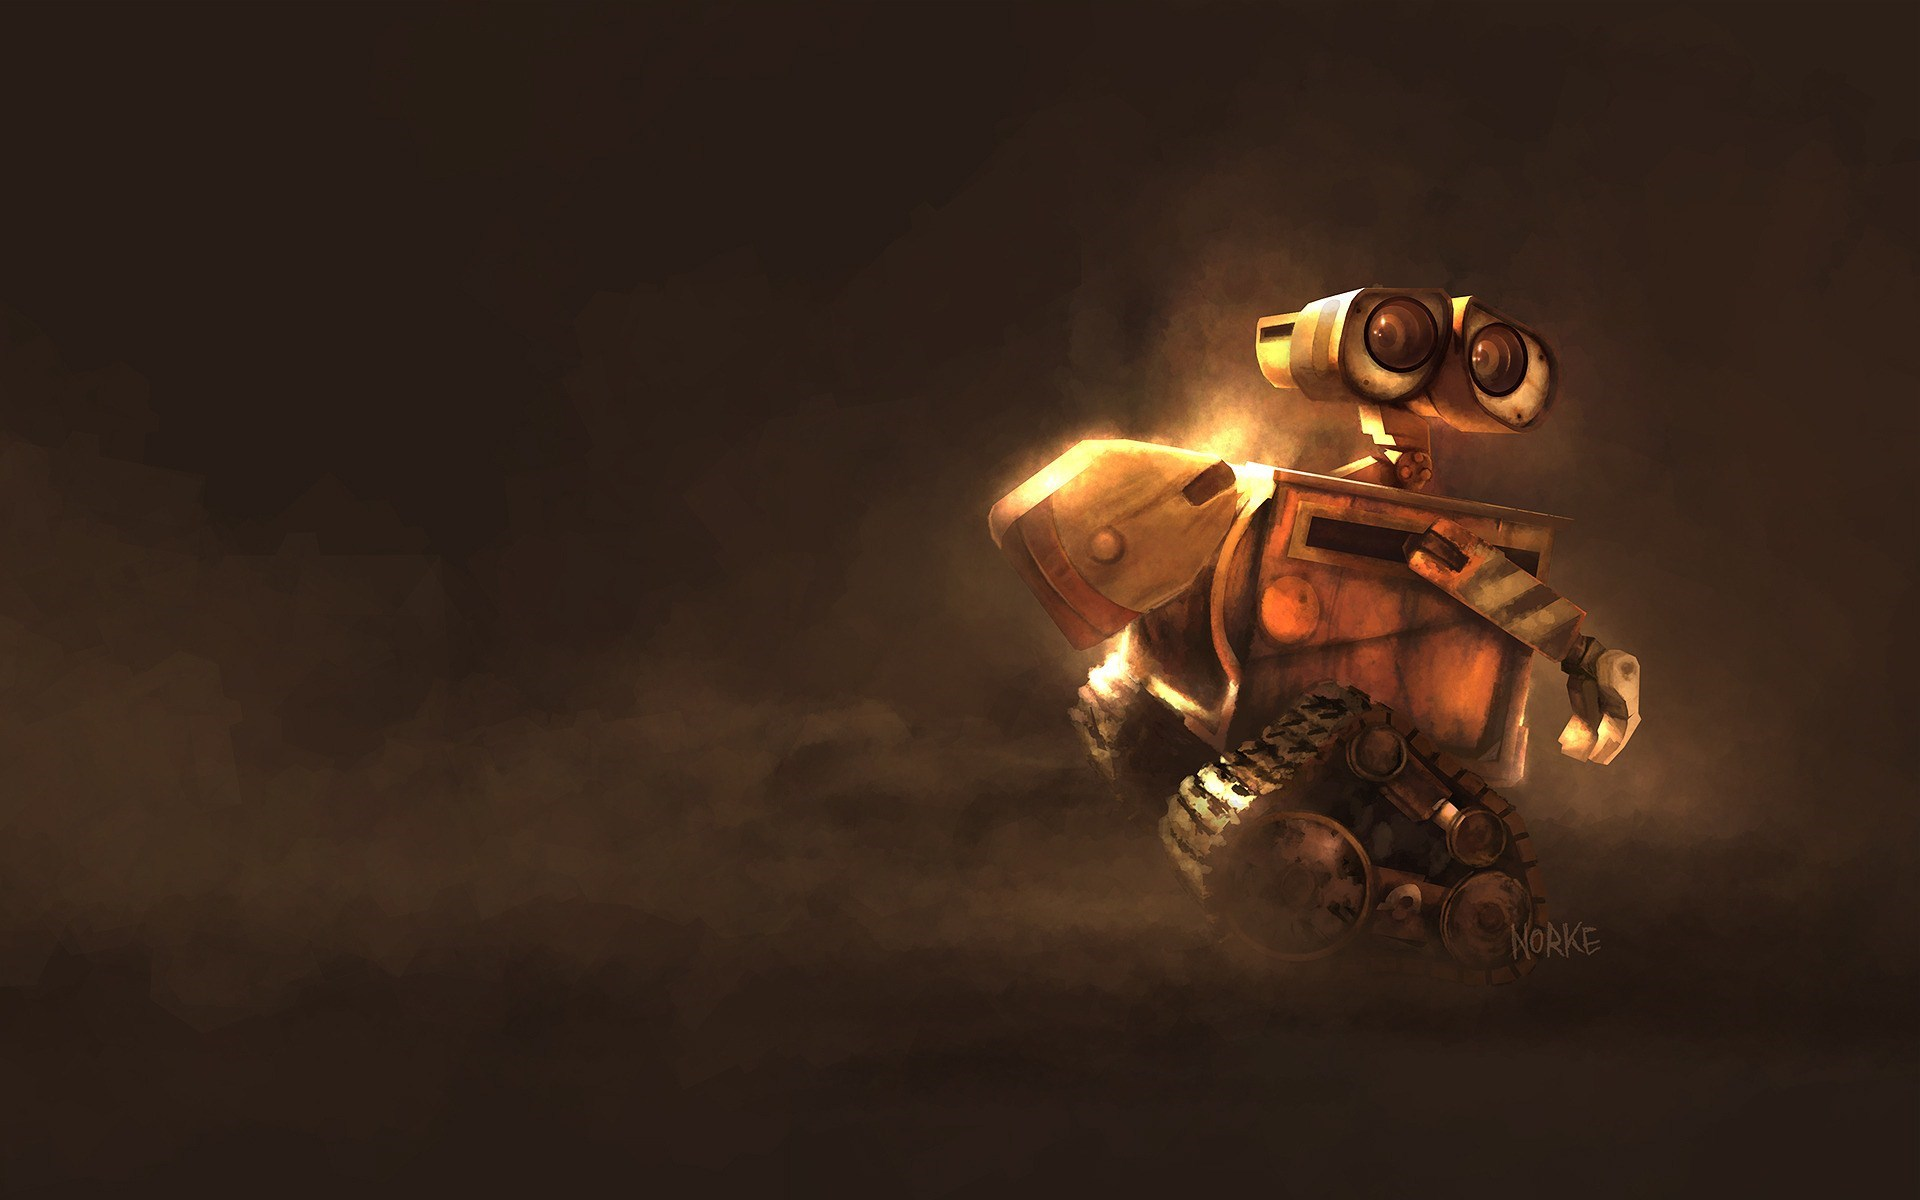 Wall e wallpapers high quality download free for High quality wallpapers for walls